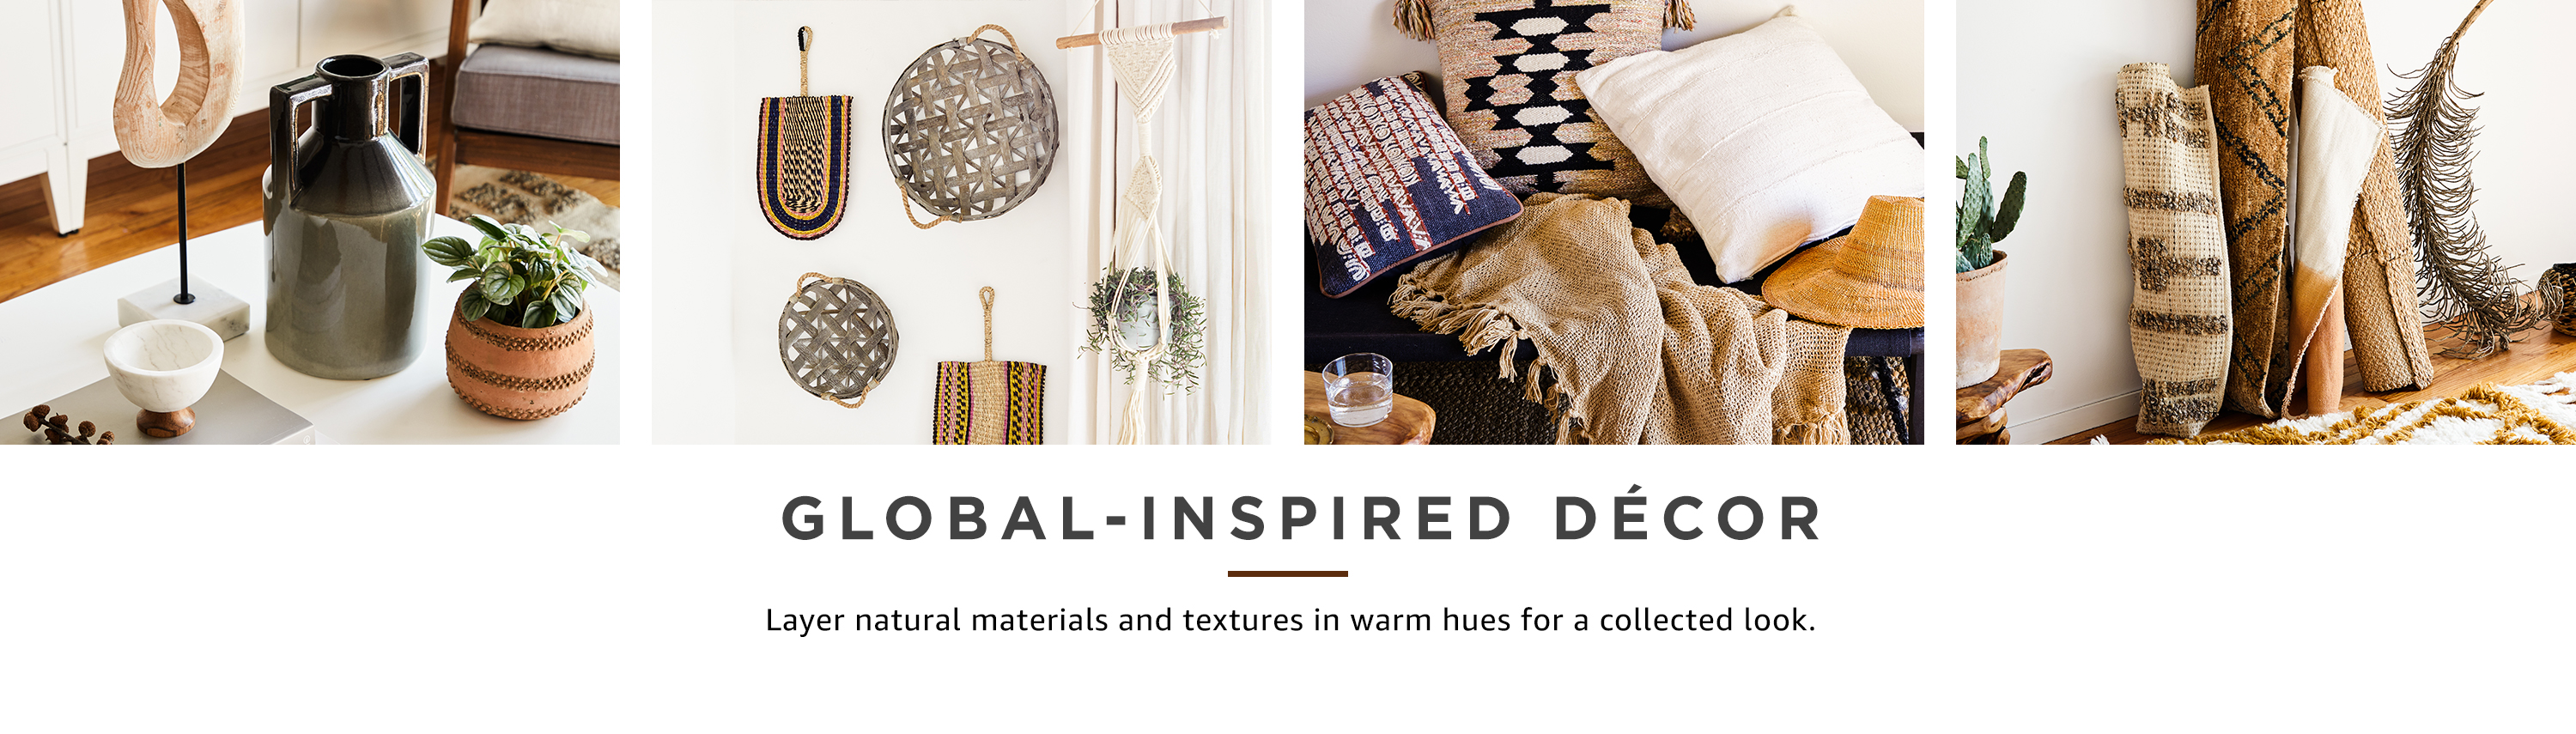 Global-inspired decor